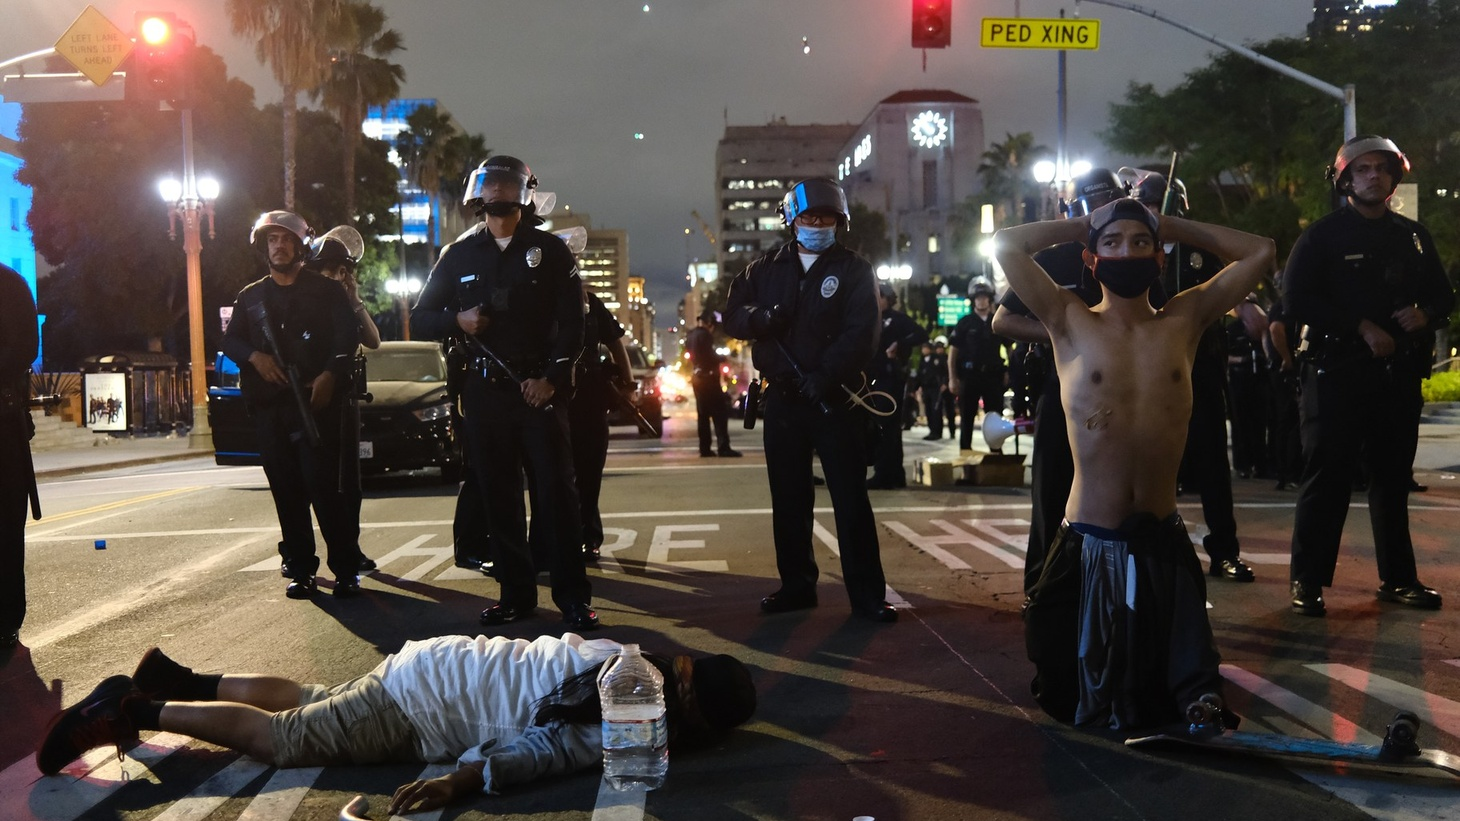 LAPD officers boxed in demonstrators who laid on the street in protest.